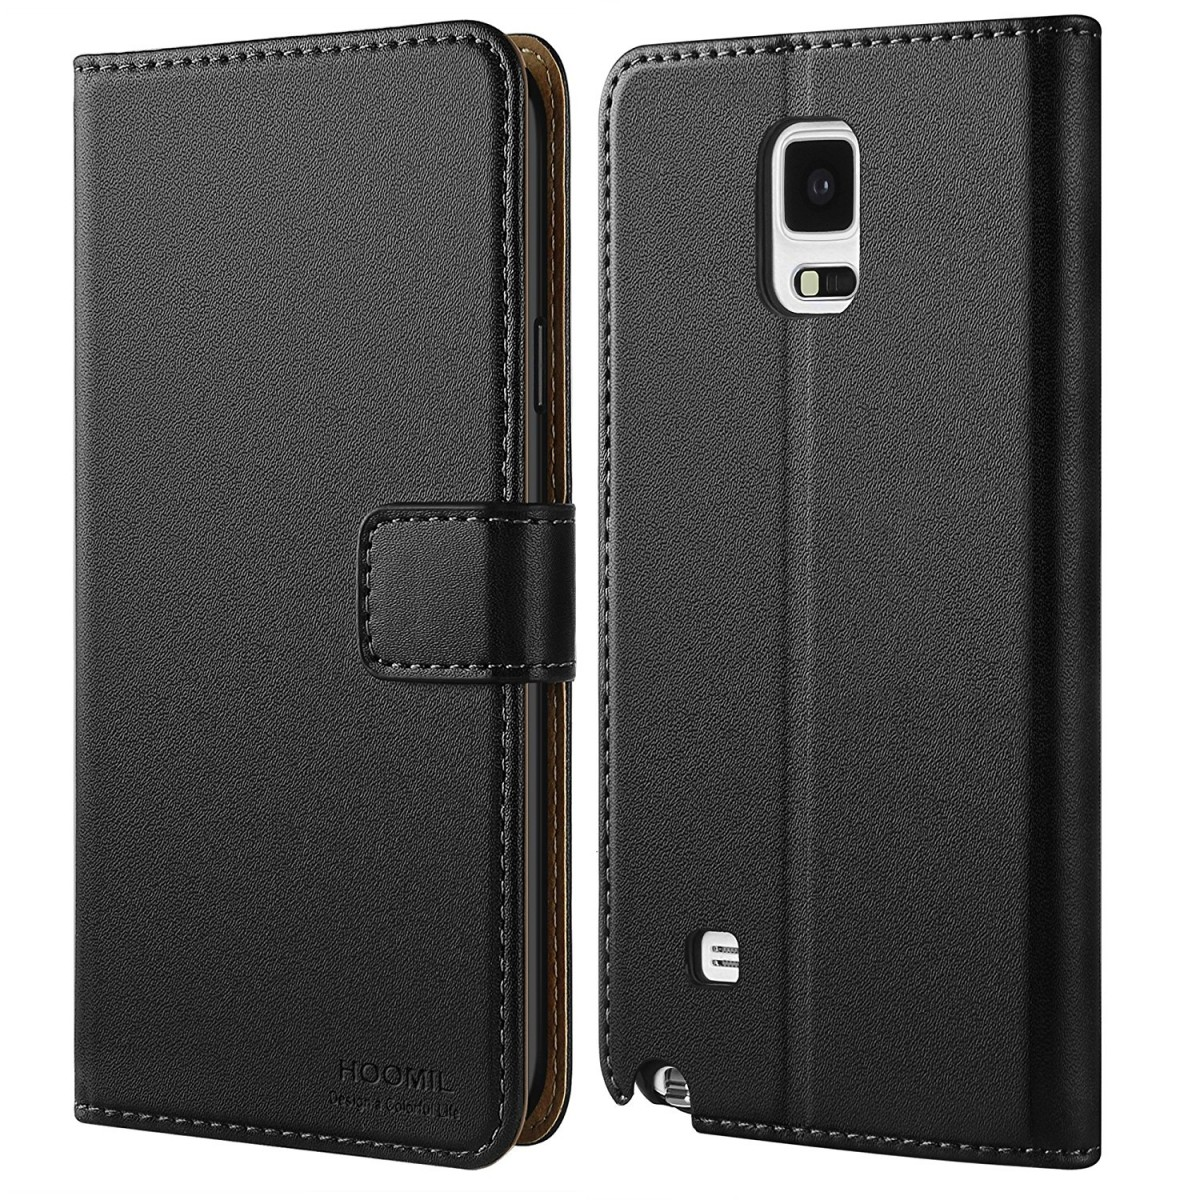 new arrival 1b6ca e433f Galaxy Note 4 Case, HOOMIL Premium Leather Case for Samsung Galaxy Note 4  Phone Wallet Case Cover (Black)